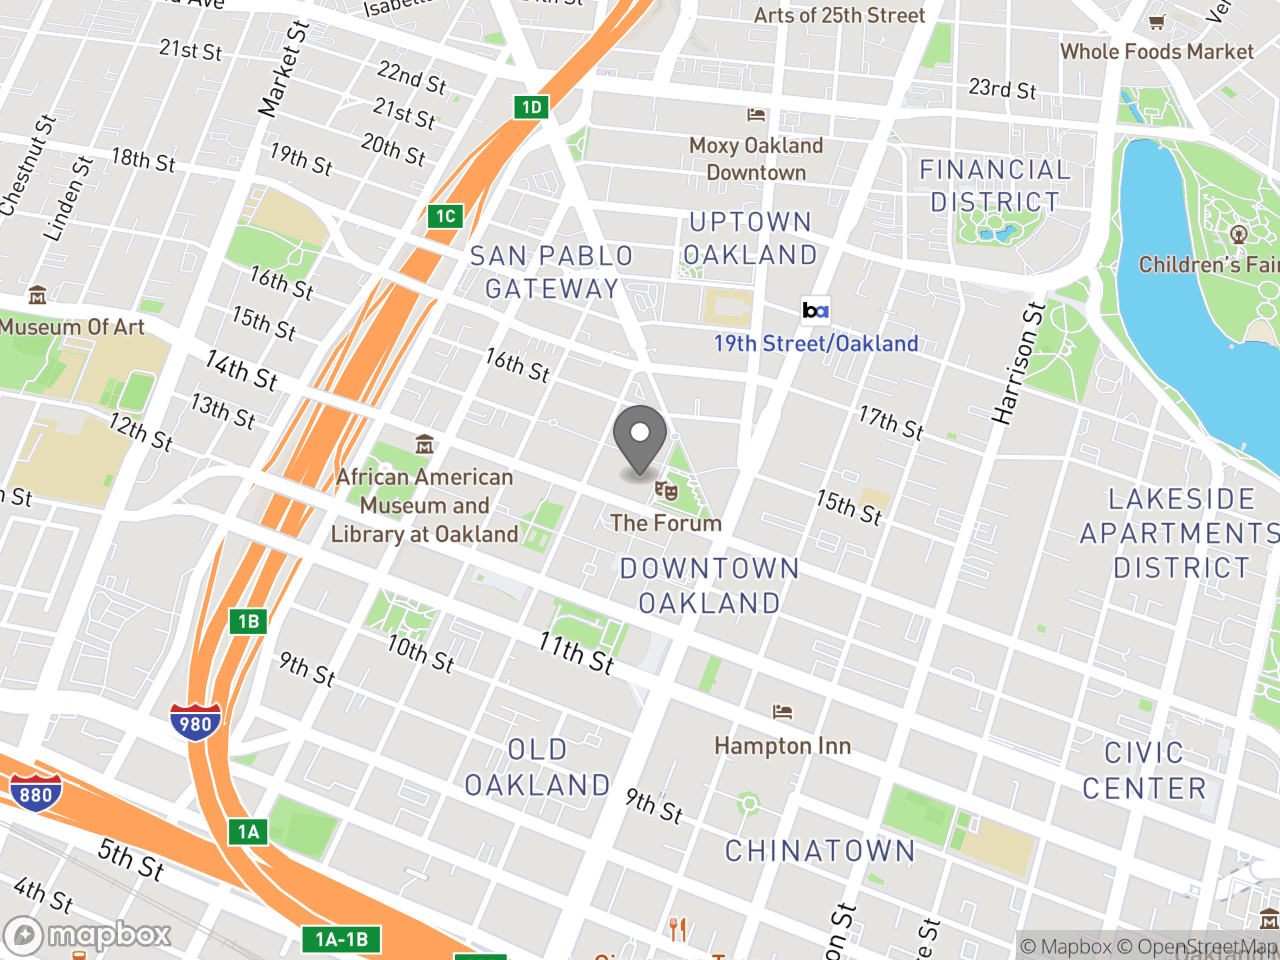 Map image for PAC April 5, 2018 Meeting, located at 1 Frank H Ogawa Plaza in Oakland, CA 94612